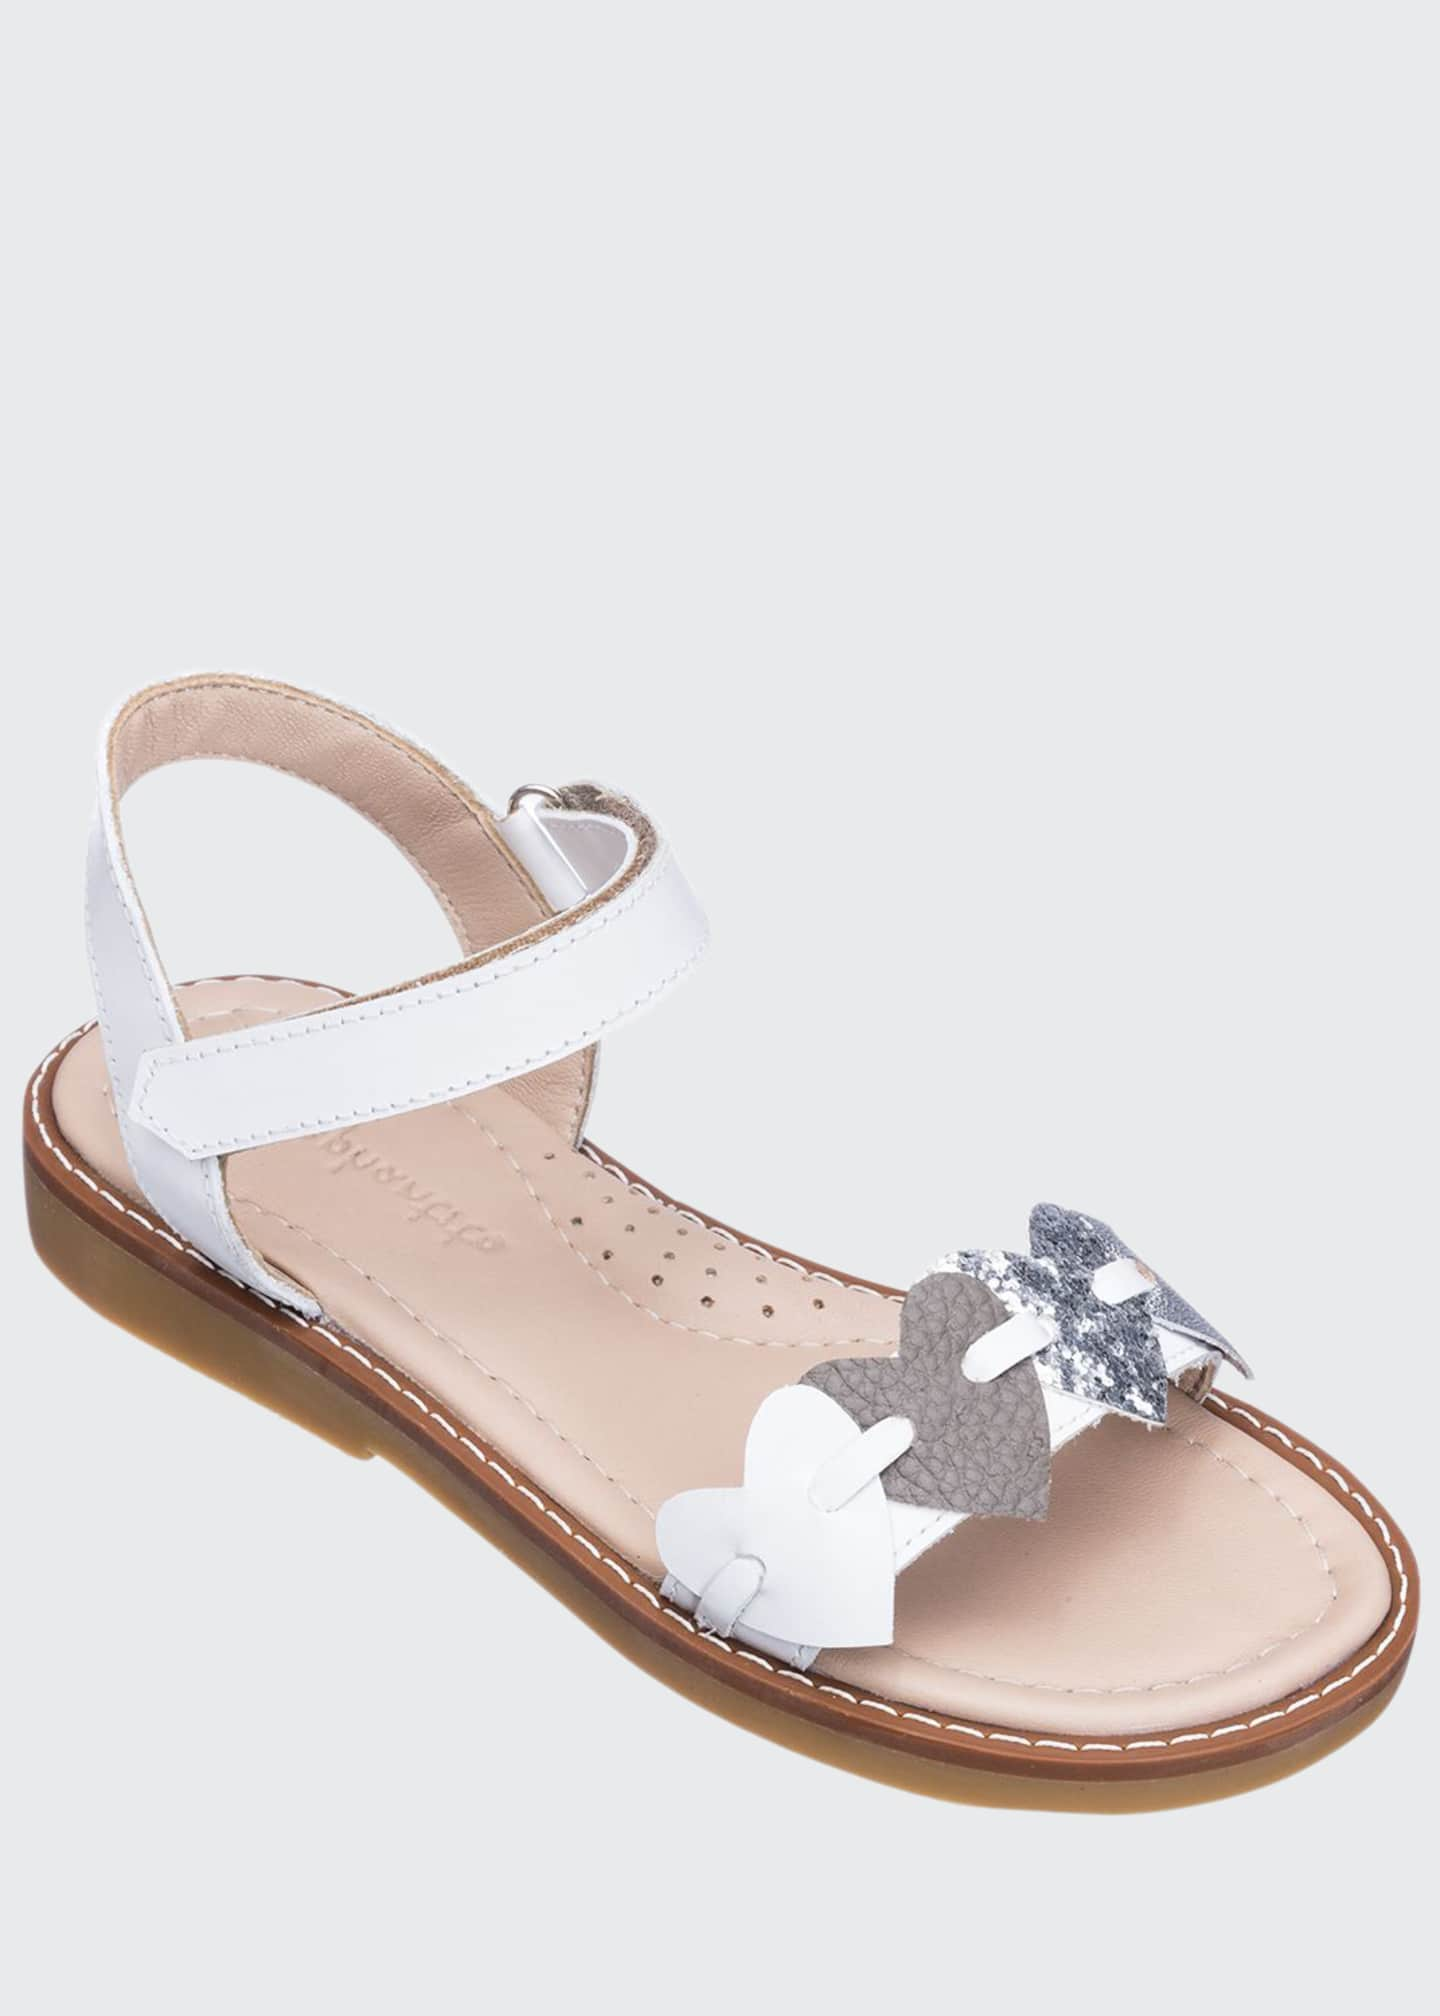 Elephantito Girls' Leather Heart Sandals, Toddler/Kids